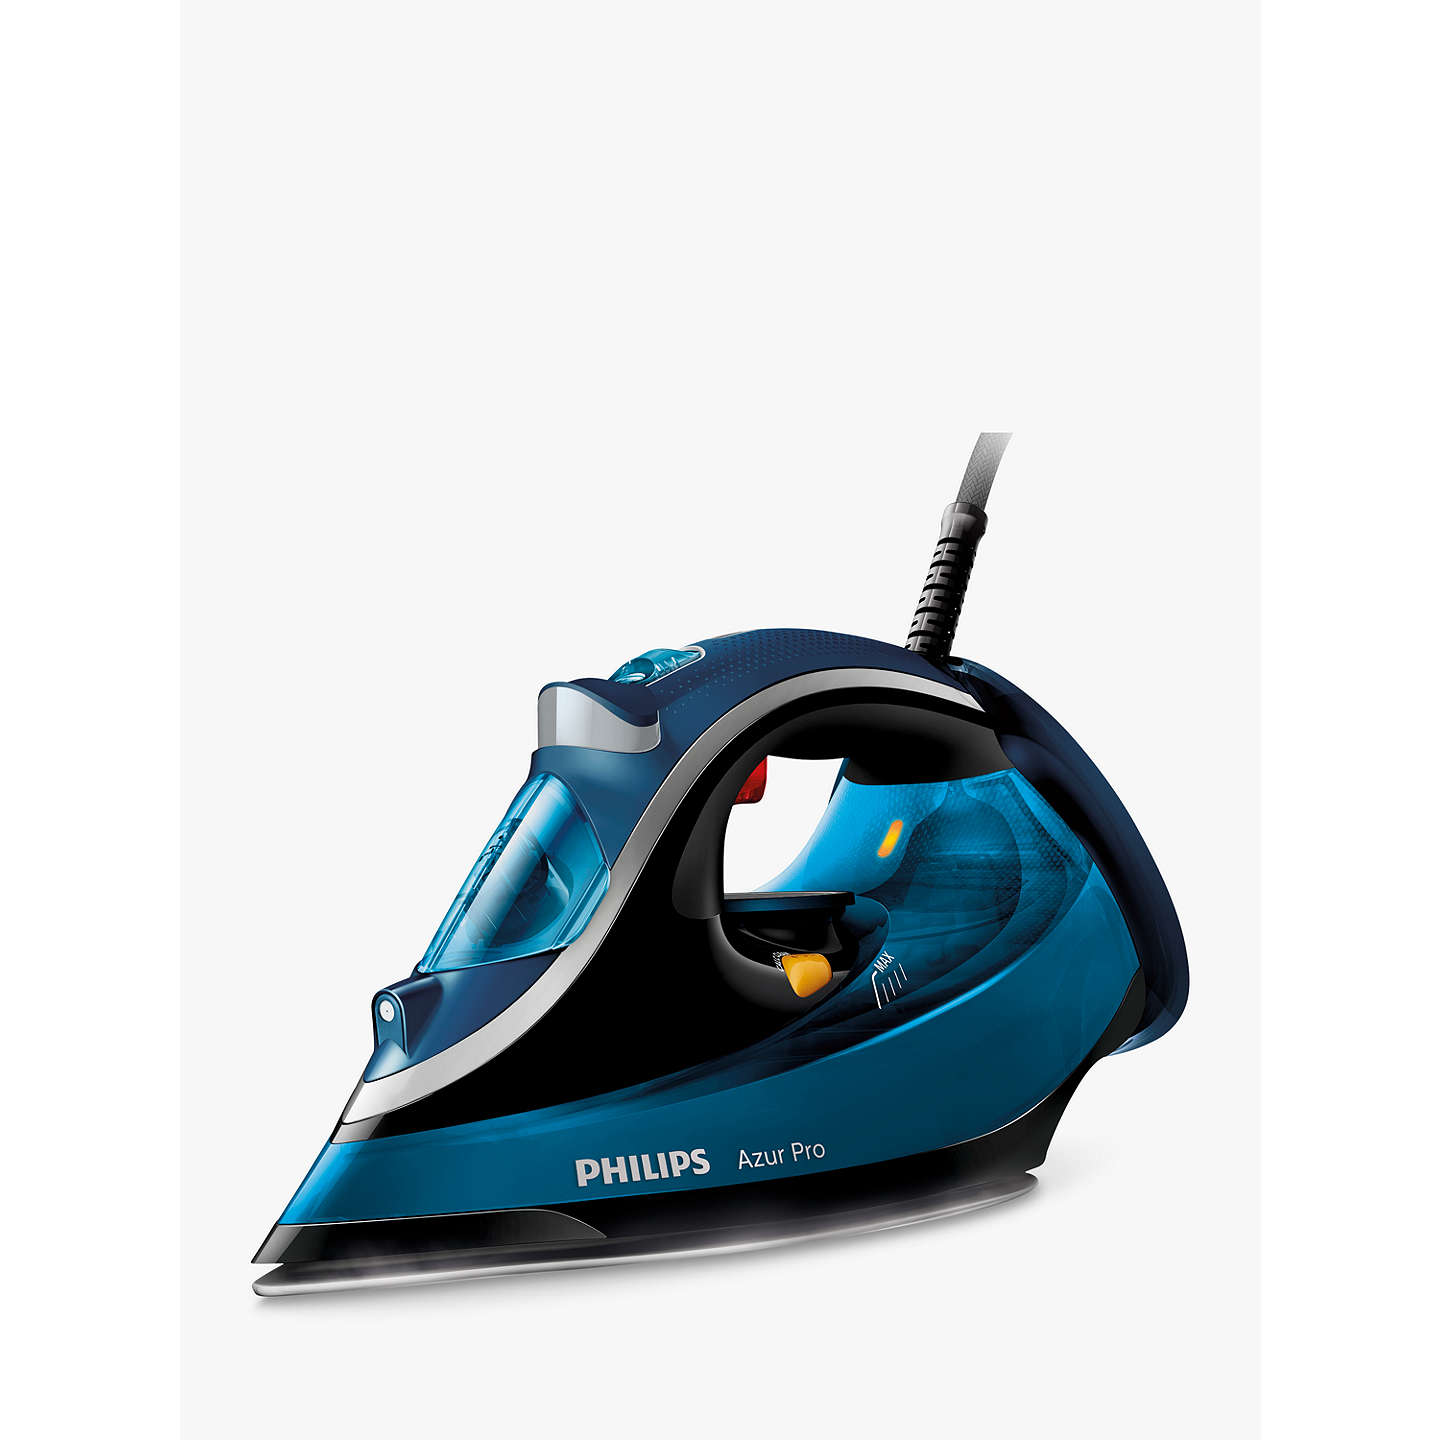 philips gc4881 20 azur pro steam iron blue at john lewis. Black Bedroom Furniture Sets. Home Design Ideas